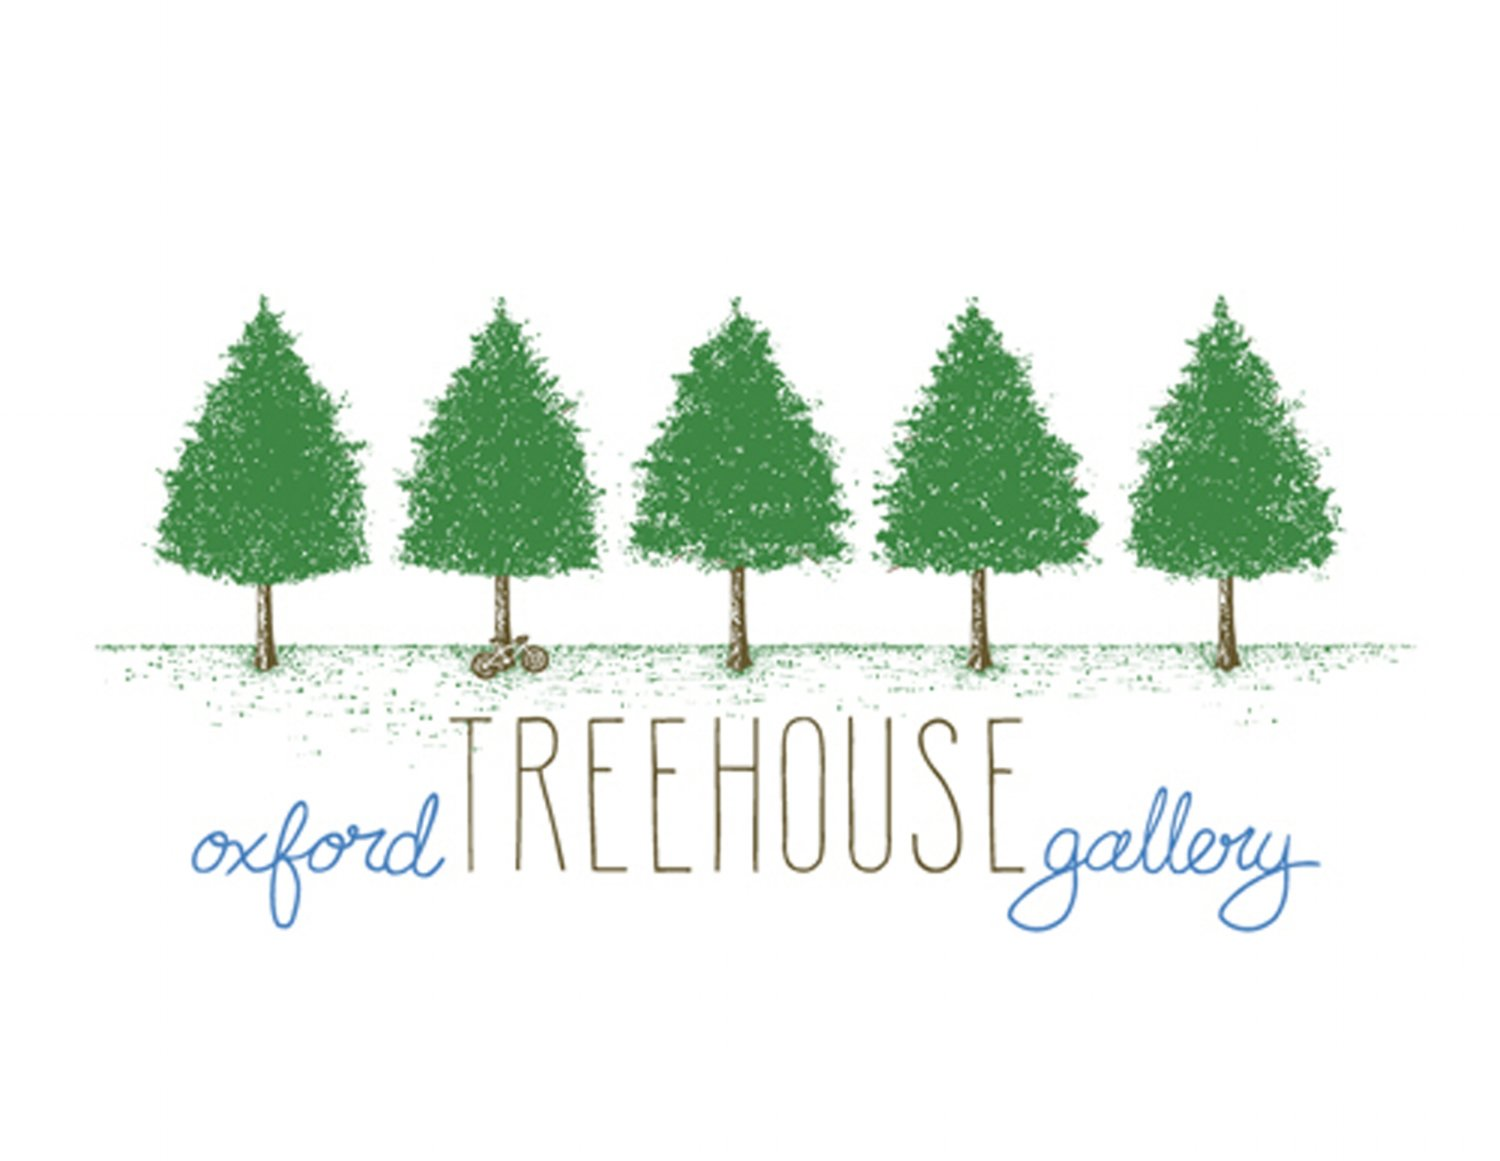 Oxford Treehouse Gallery